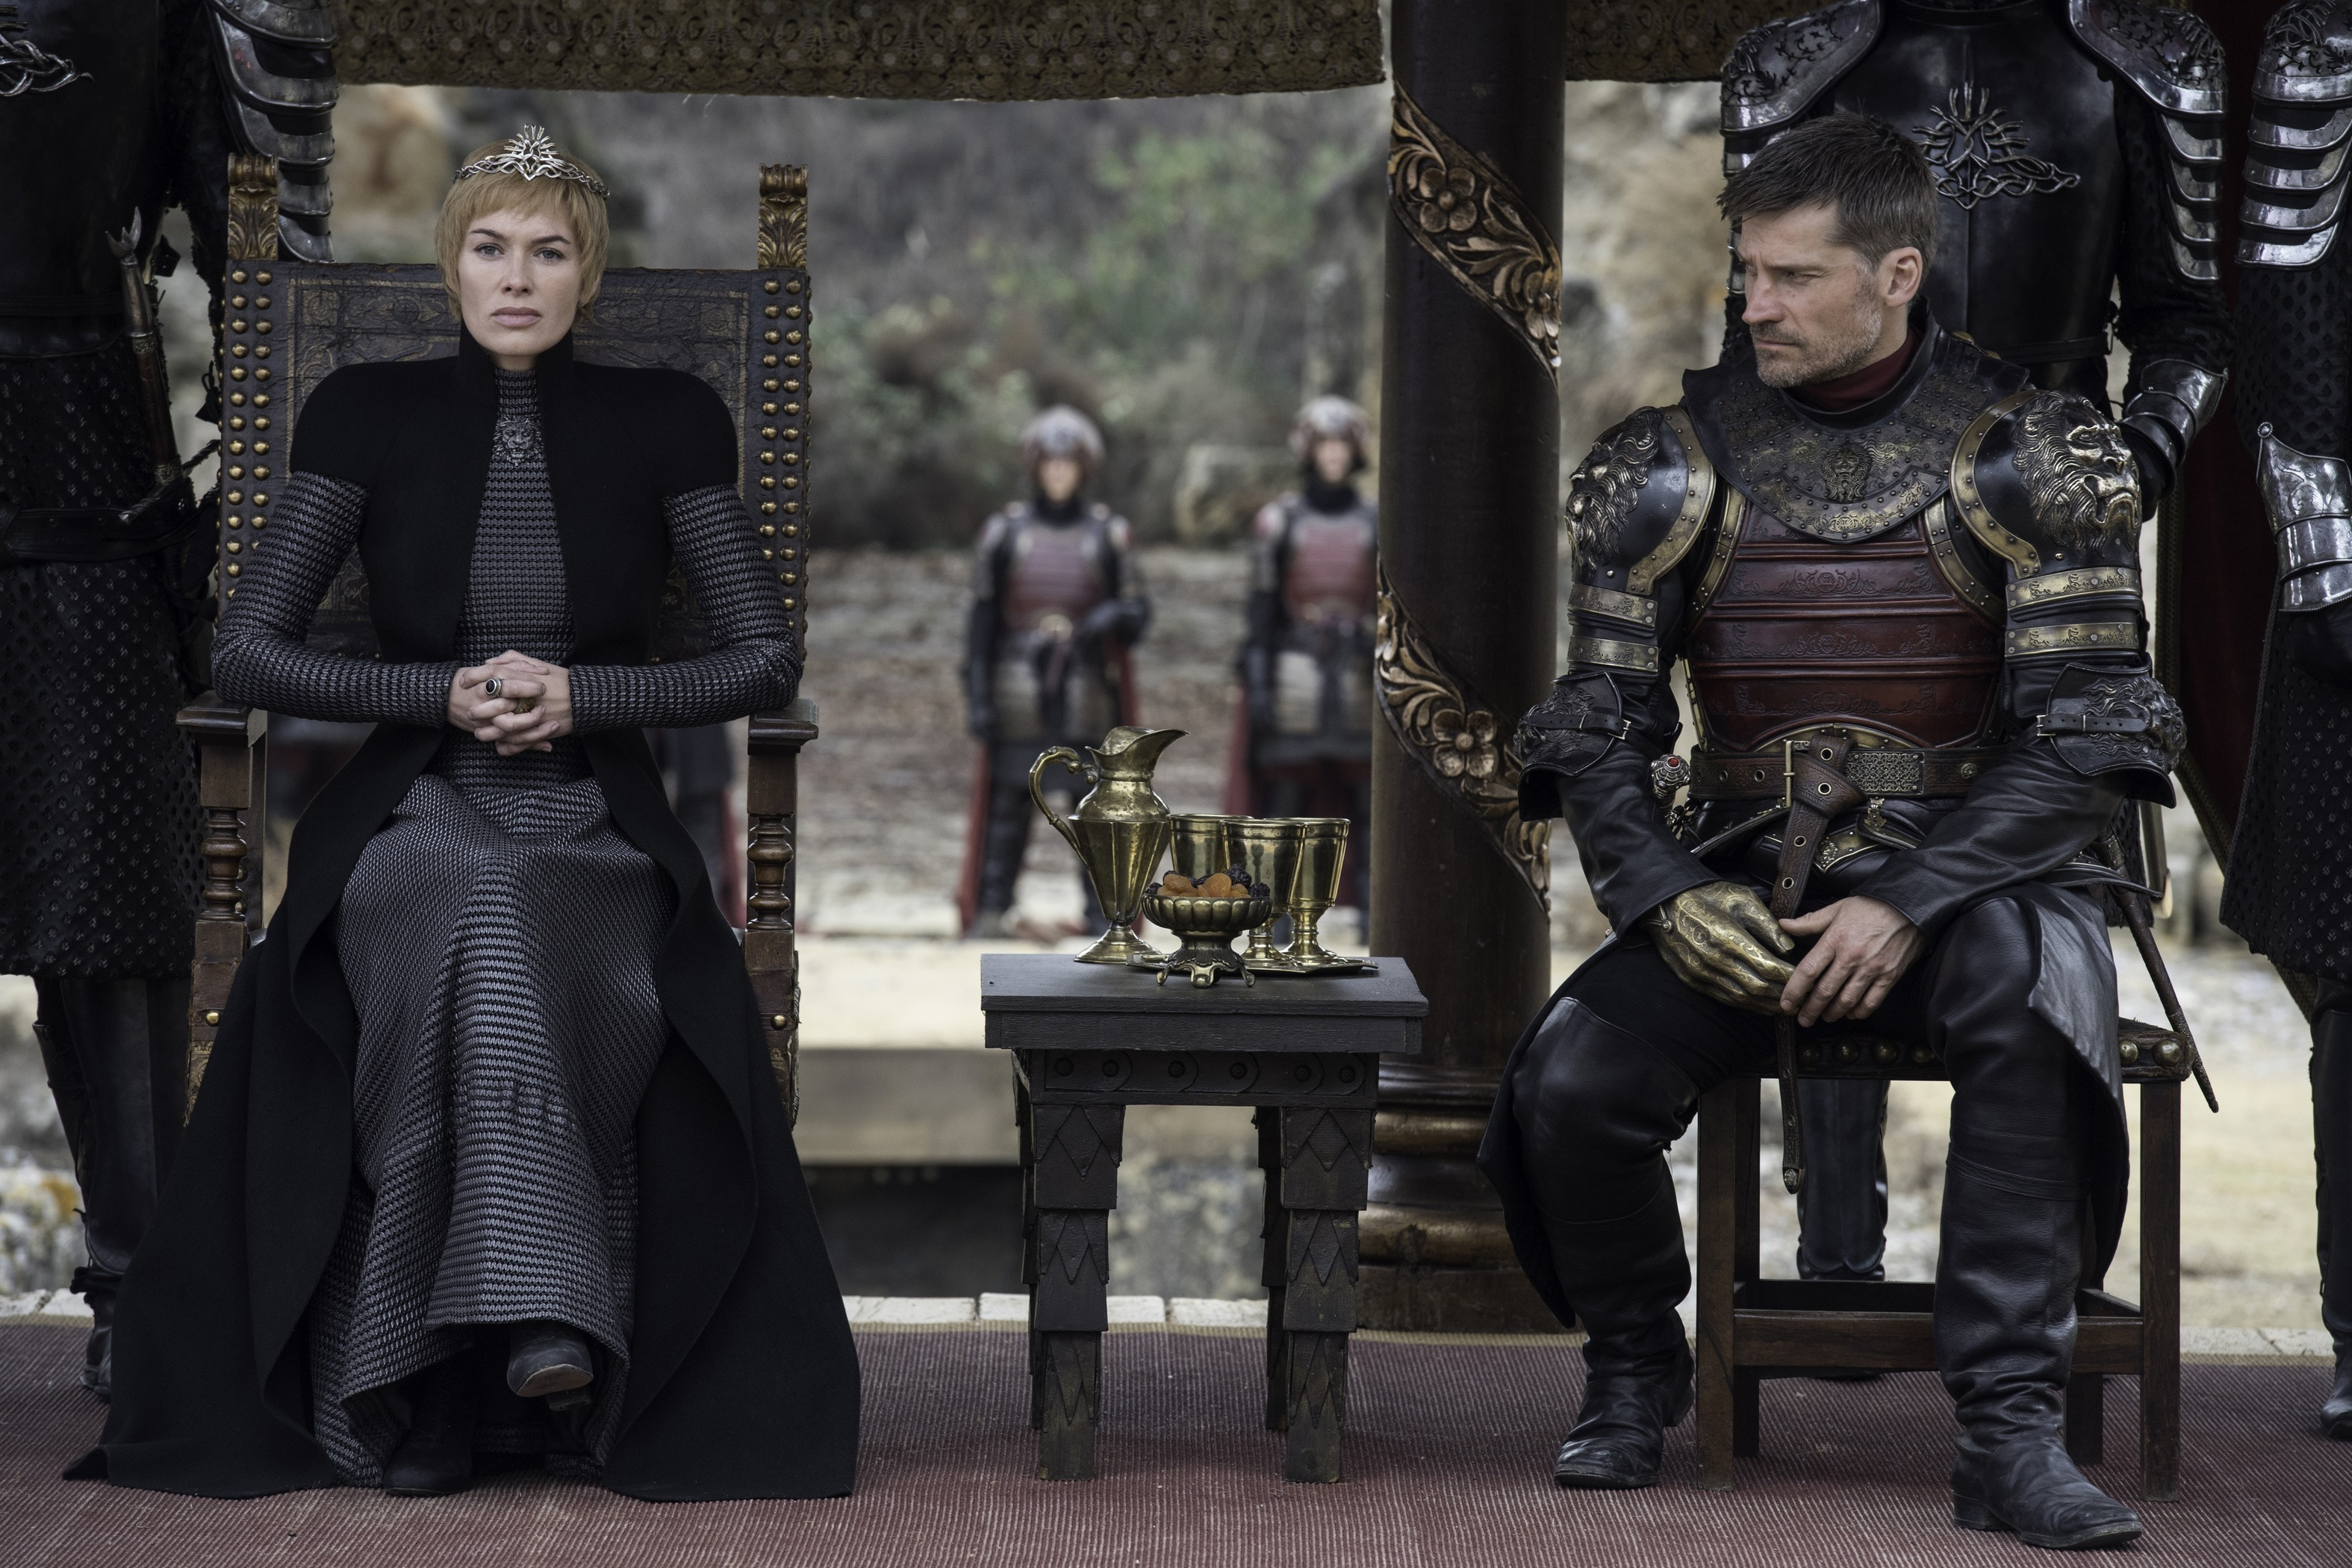 Lena Headey and Nikolaj Coster-Waldau as Cersei Lannister and Jaime Lannister